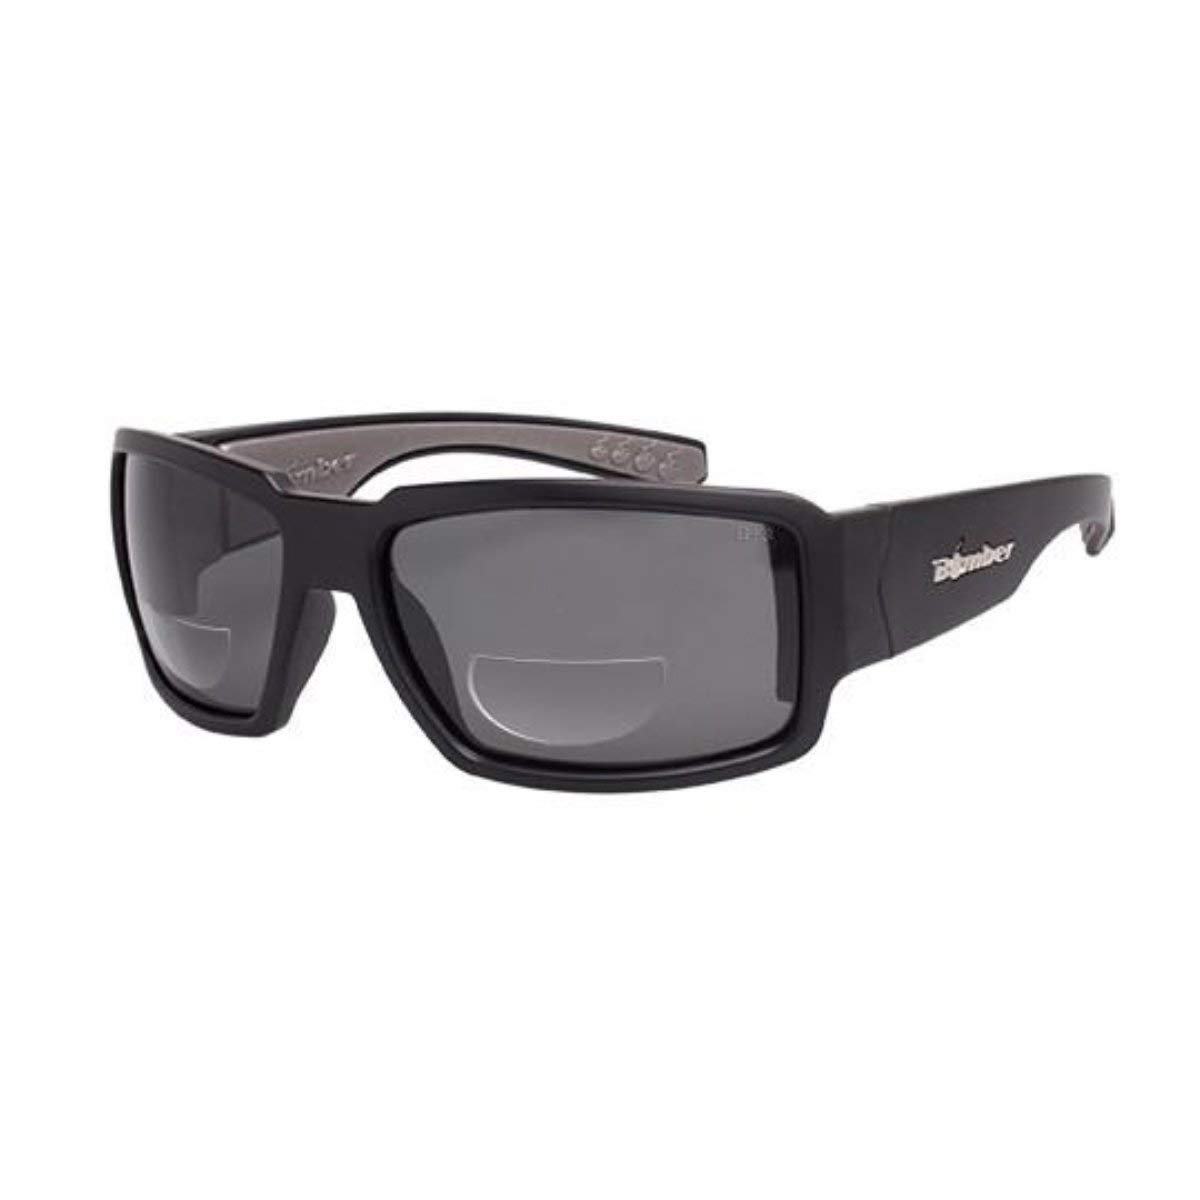 863a9c9fdfd5 Get Quotations · Bomber Sunglasses - Boogie Bomb ANSI Z87+ safety Bi Focal  Lens